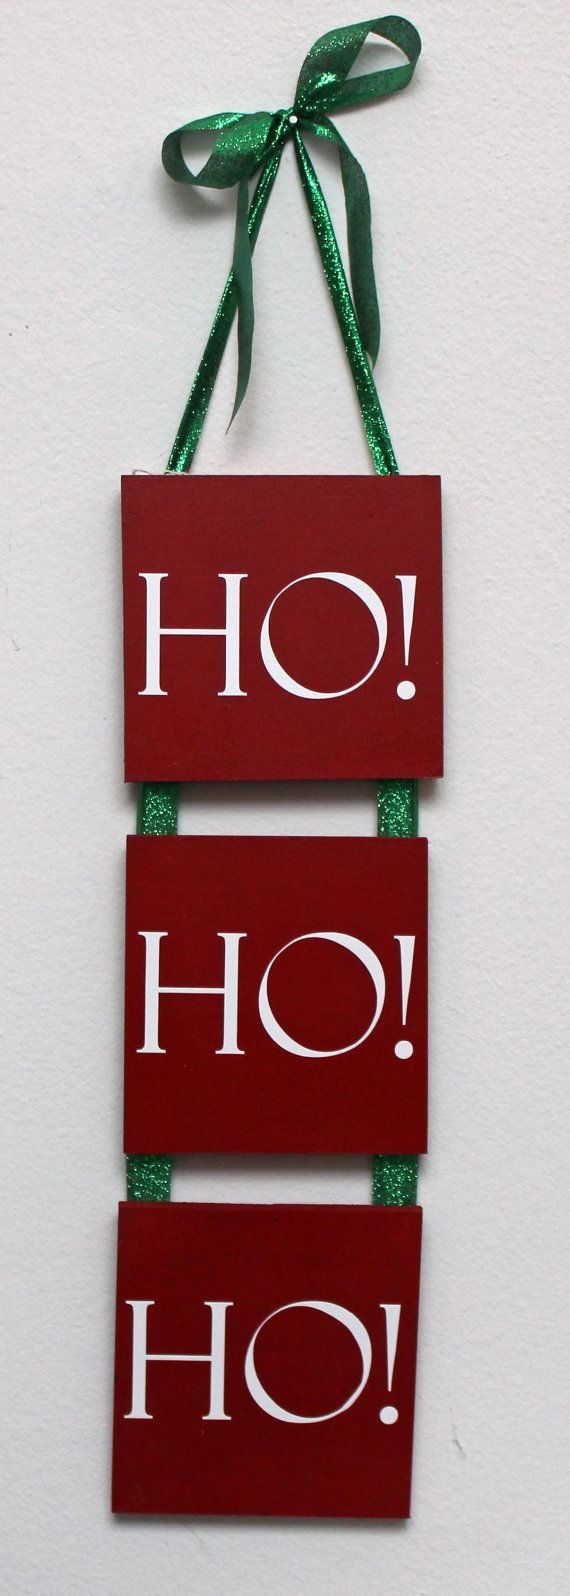 Christmas wooden christmas memories hanging sign sold out - Ho Ho Ho Christmas Sign